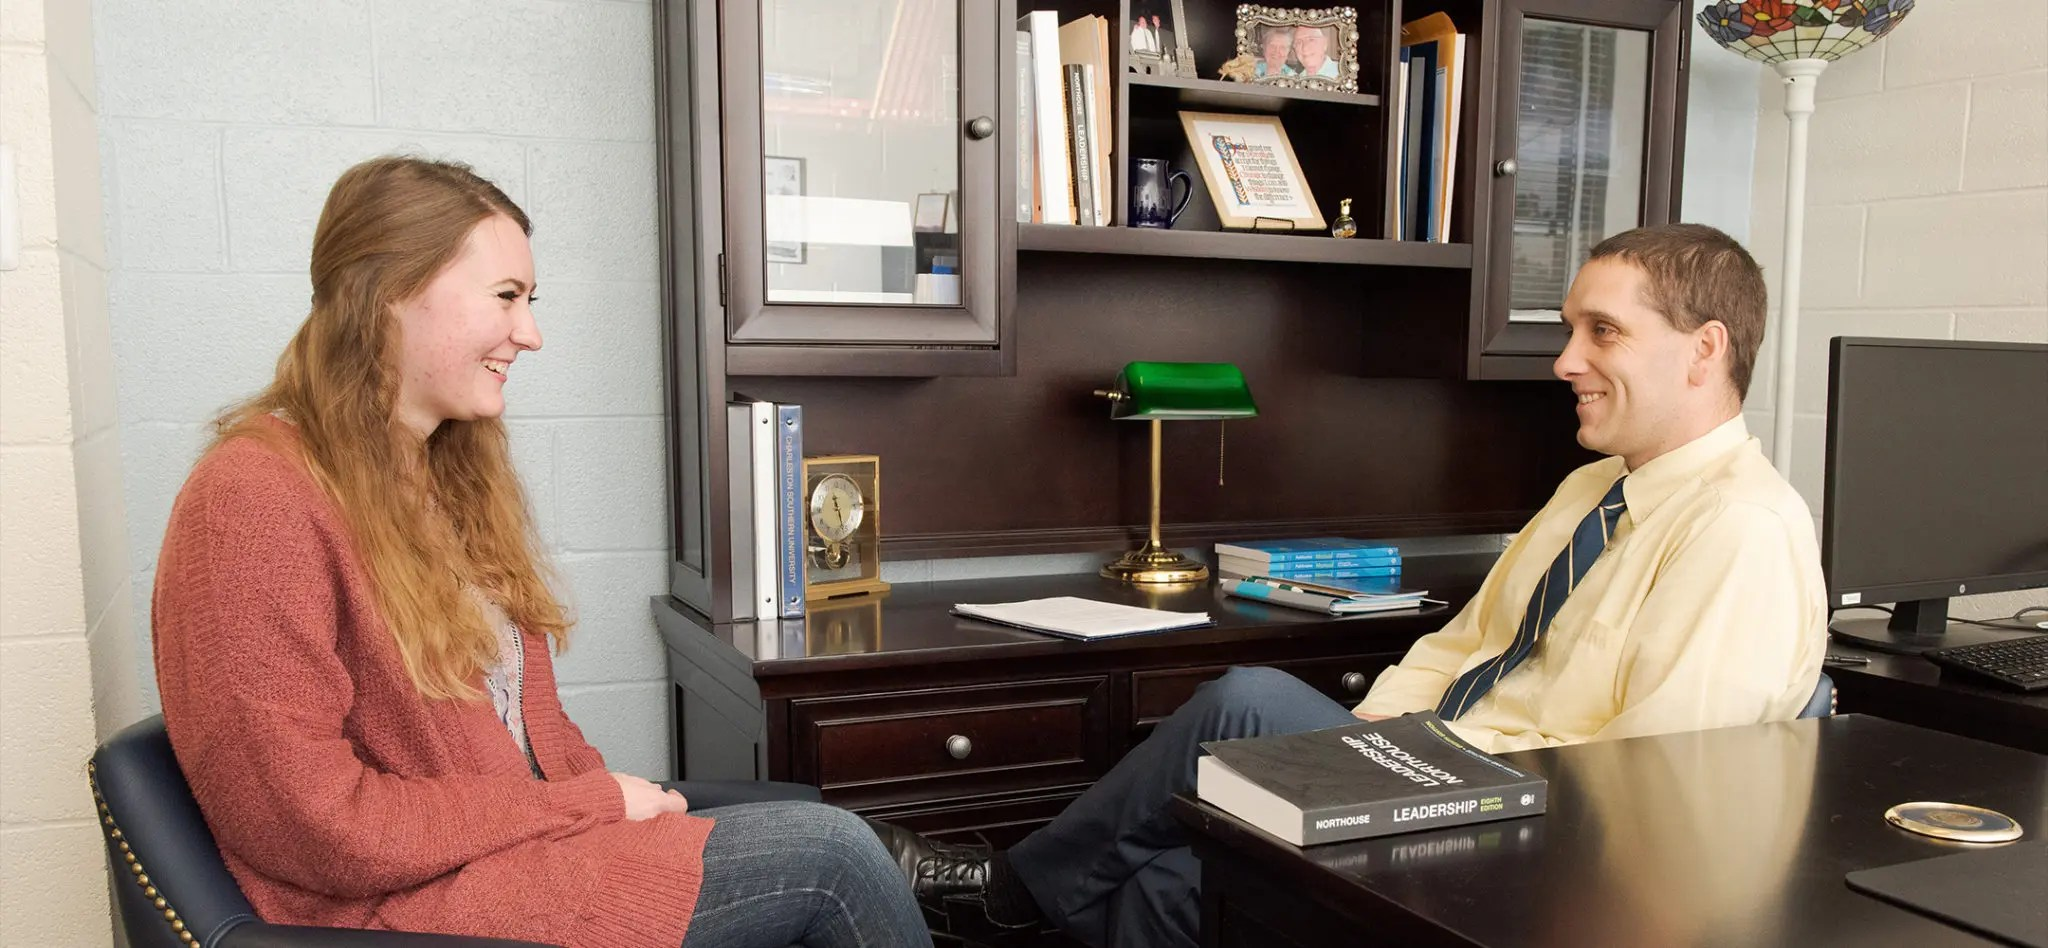 A faculty advisor sitting with a female student in his office talking about classes.